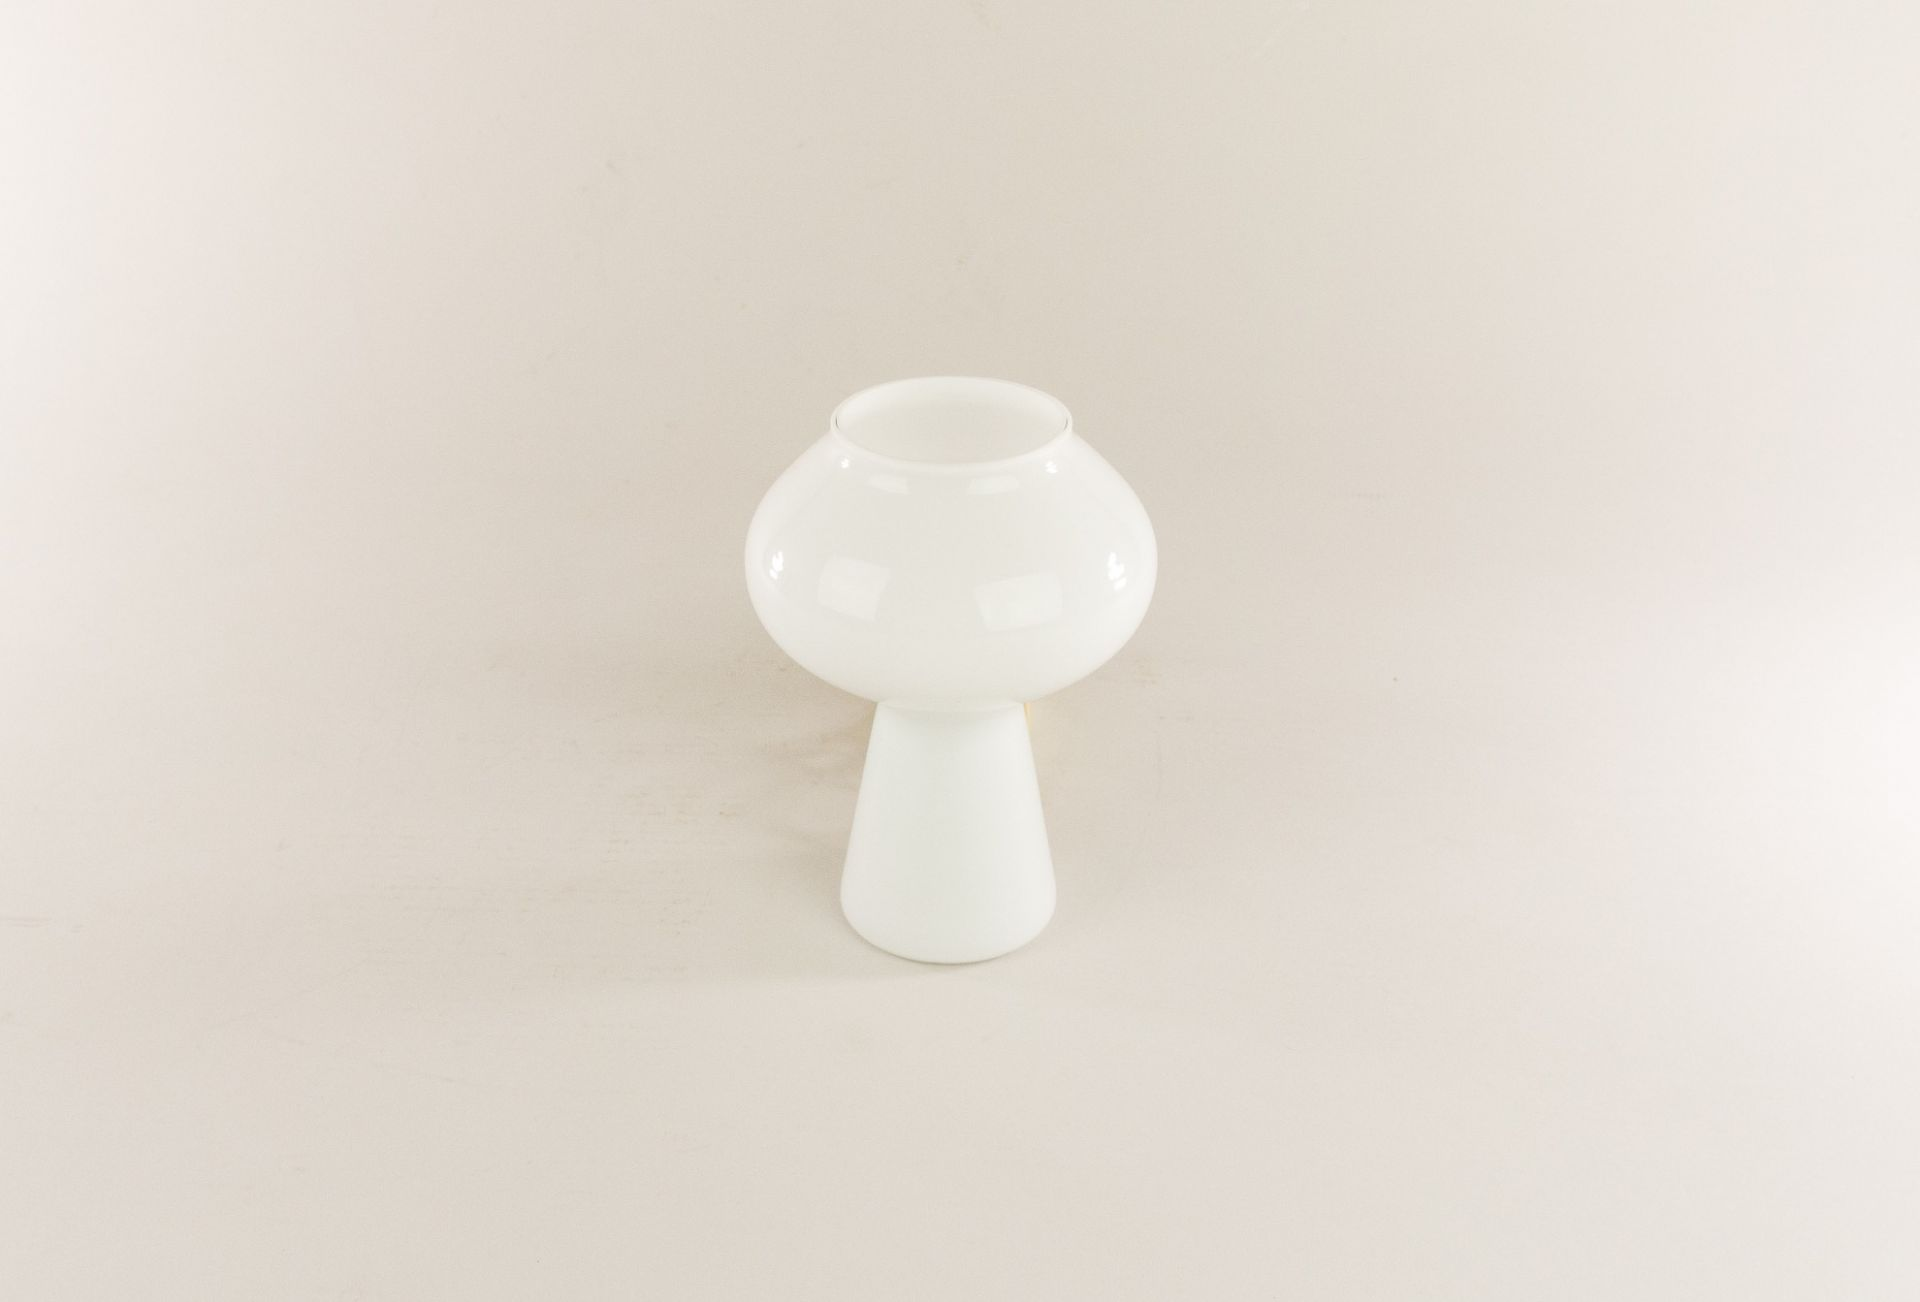 White hand-blown Fungo table lamp (mini) by Massimo Vignelli for Venini, 1950s